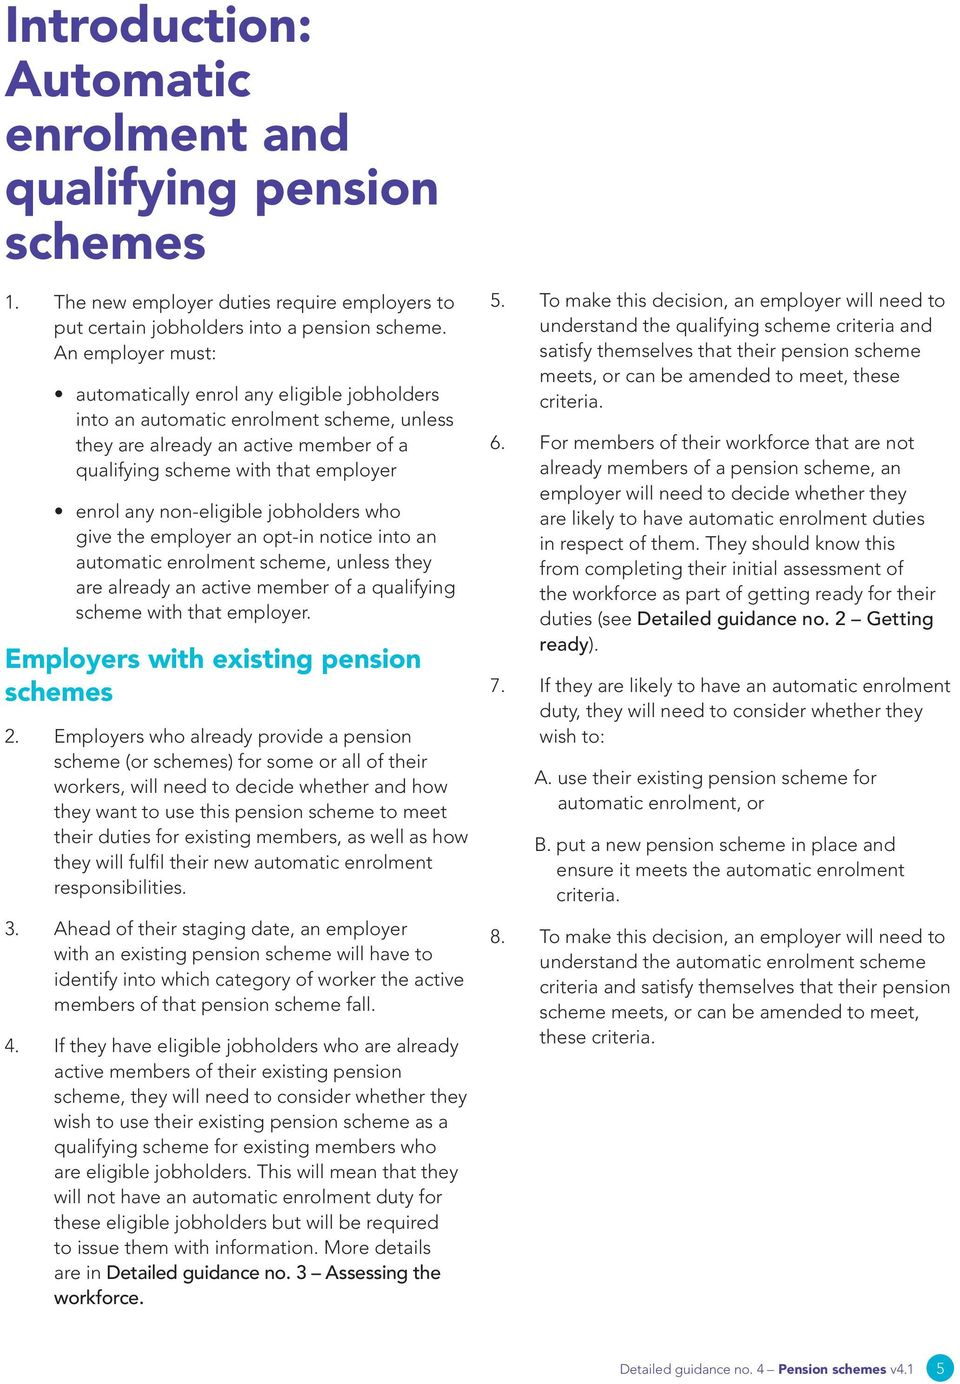 non-eligible jobholders who give the employer an opt-in notice into an automatic enrolment scheme, unless they are already an active member of a qualifying scheme with that employer.